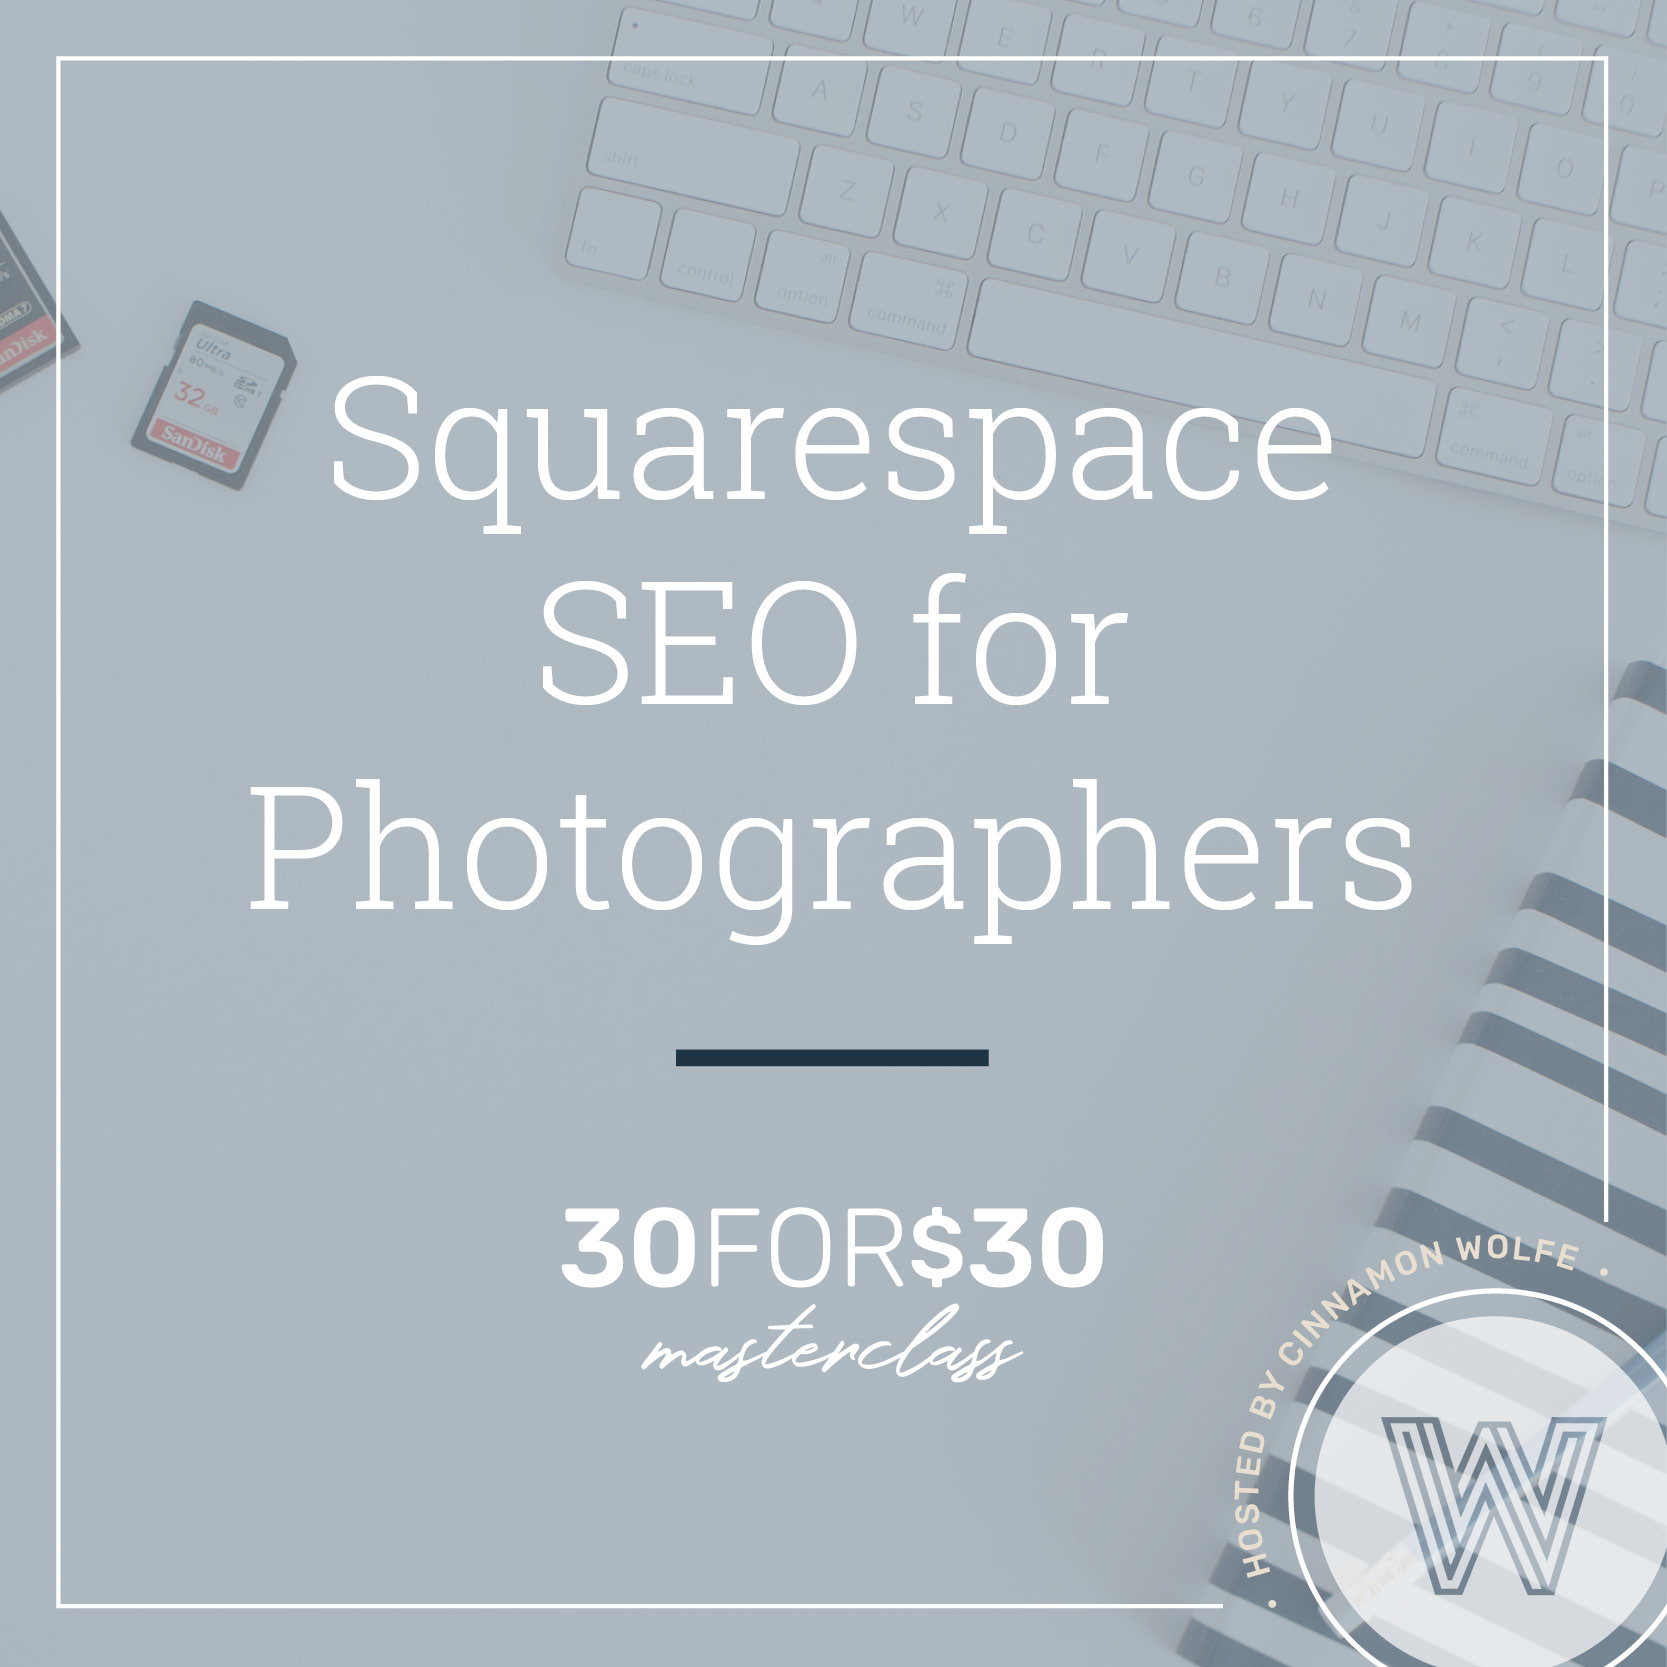 Squarespace SEO for Photographers 30 for $30 Masterclasses by Cinnamon Wolfe